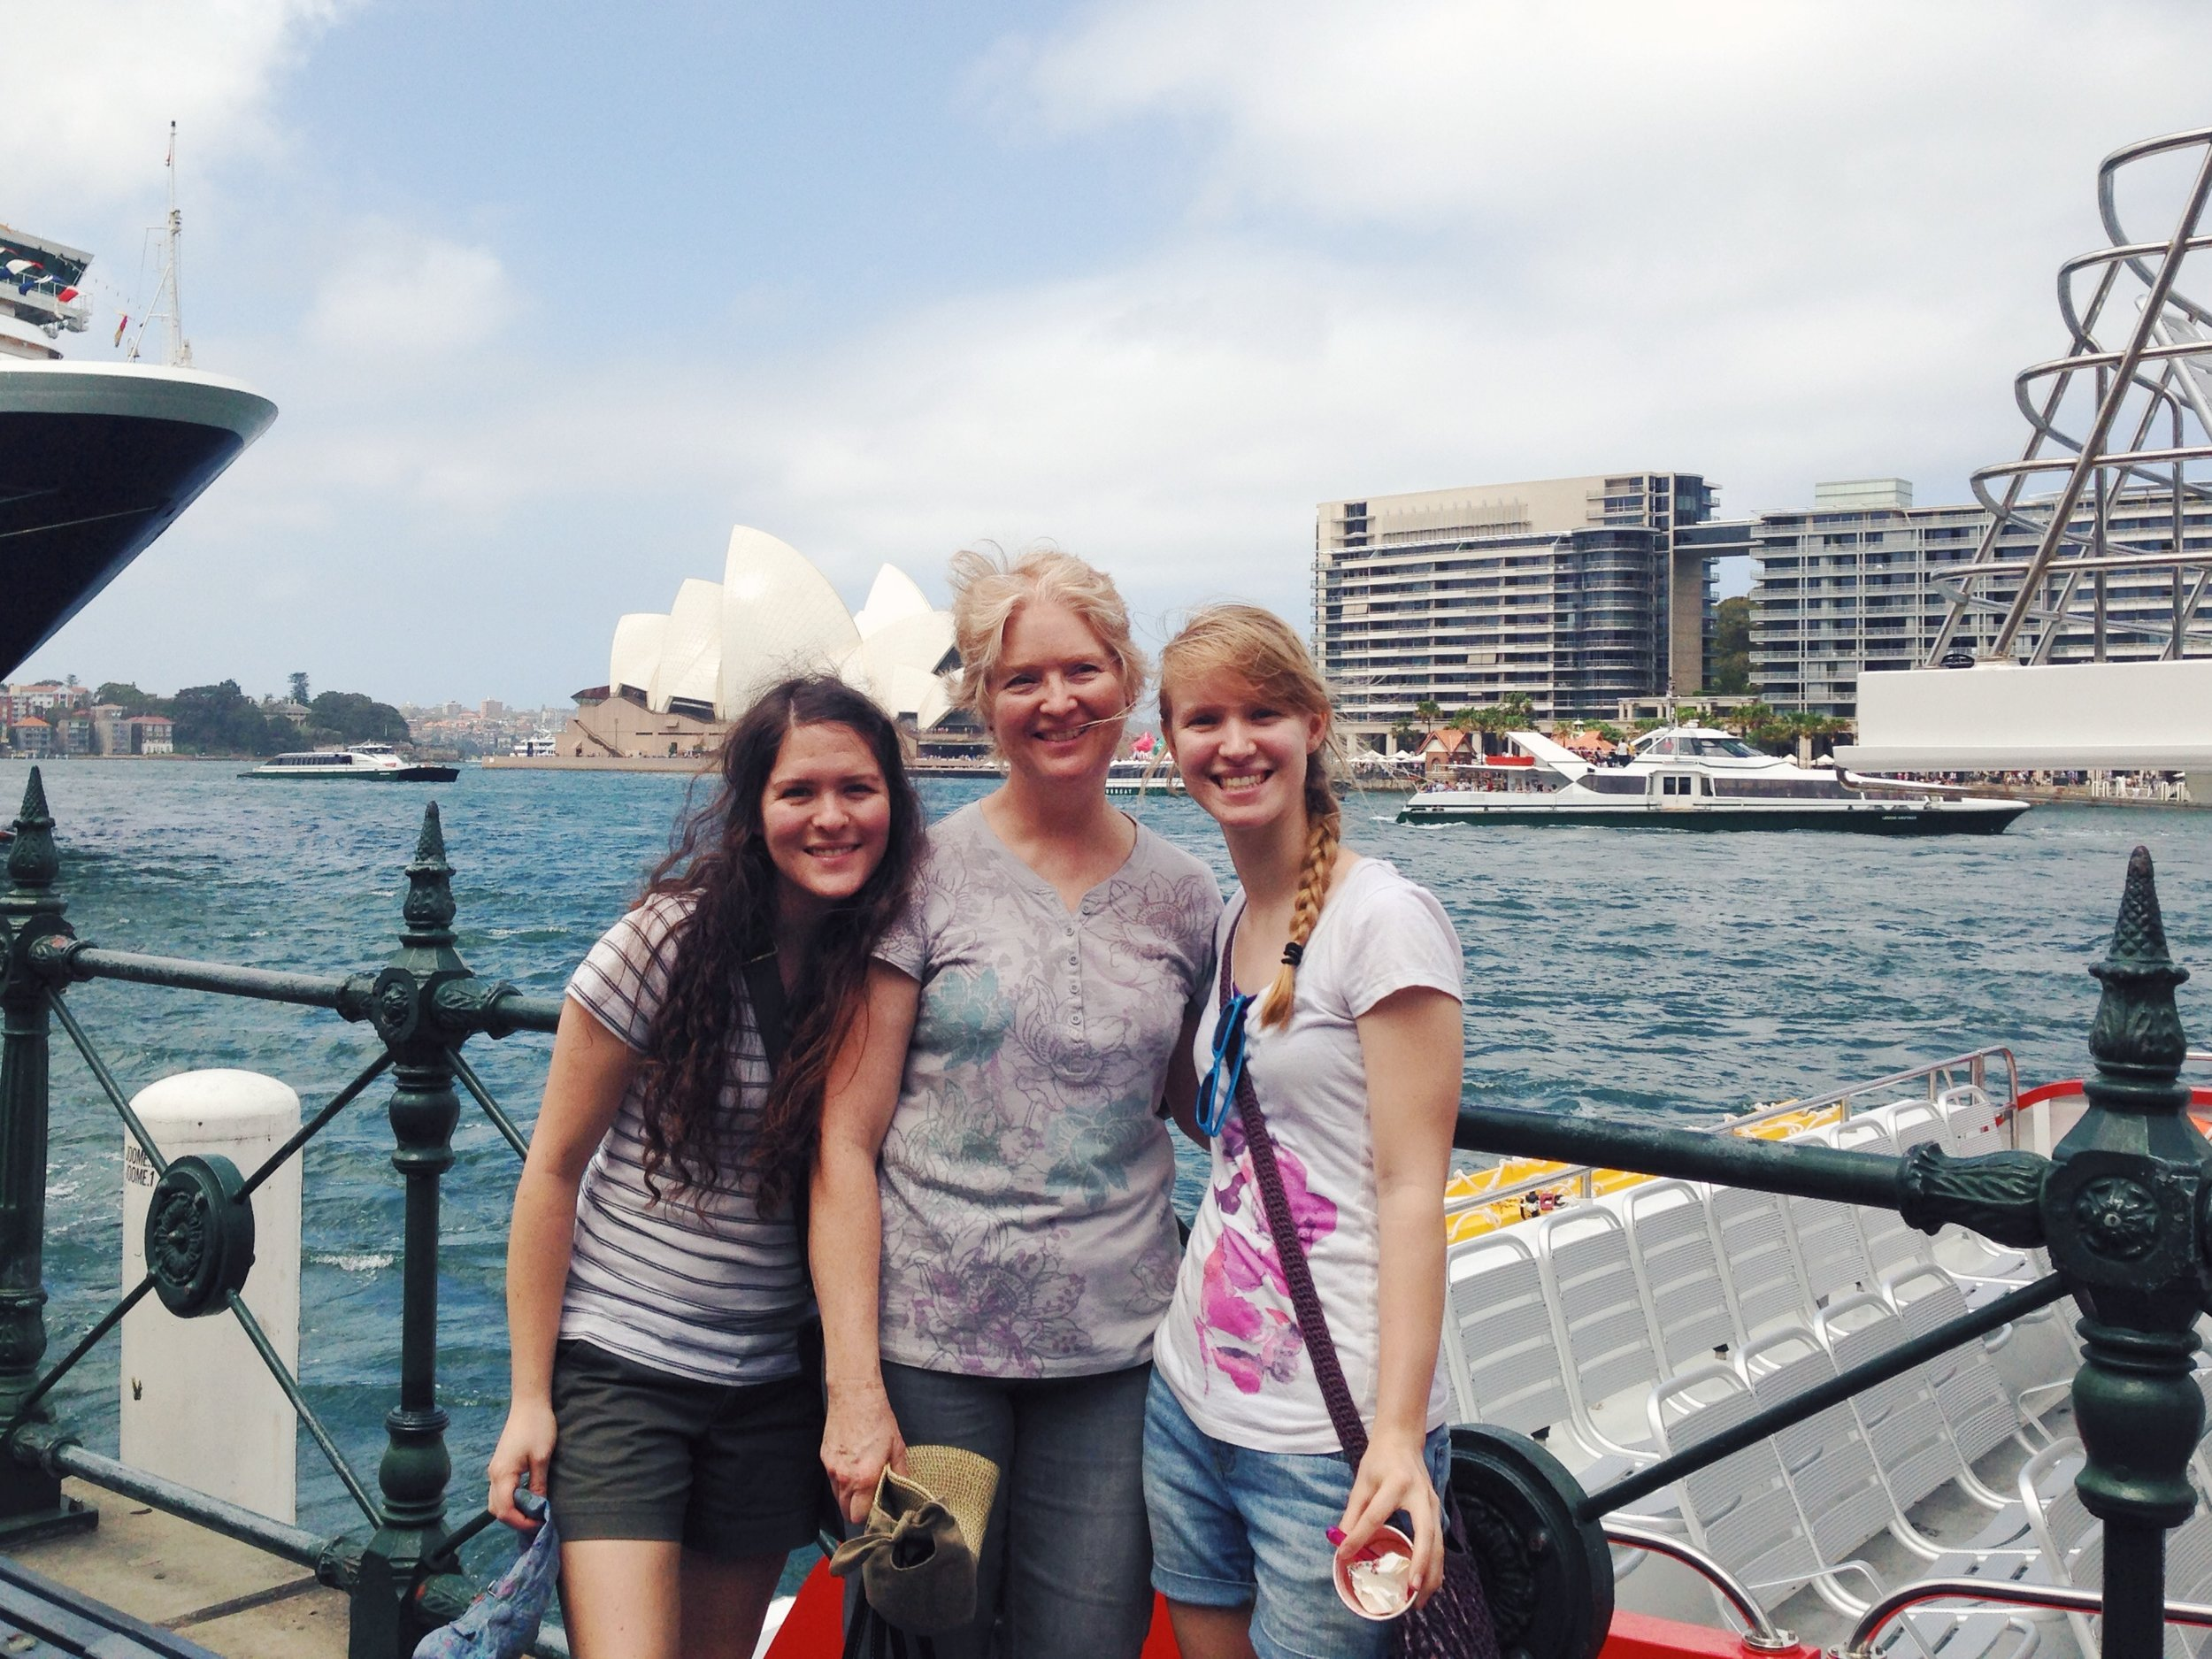 amelia judy and clarissa by the sydney opera house